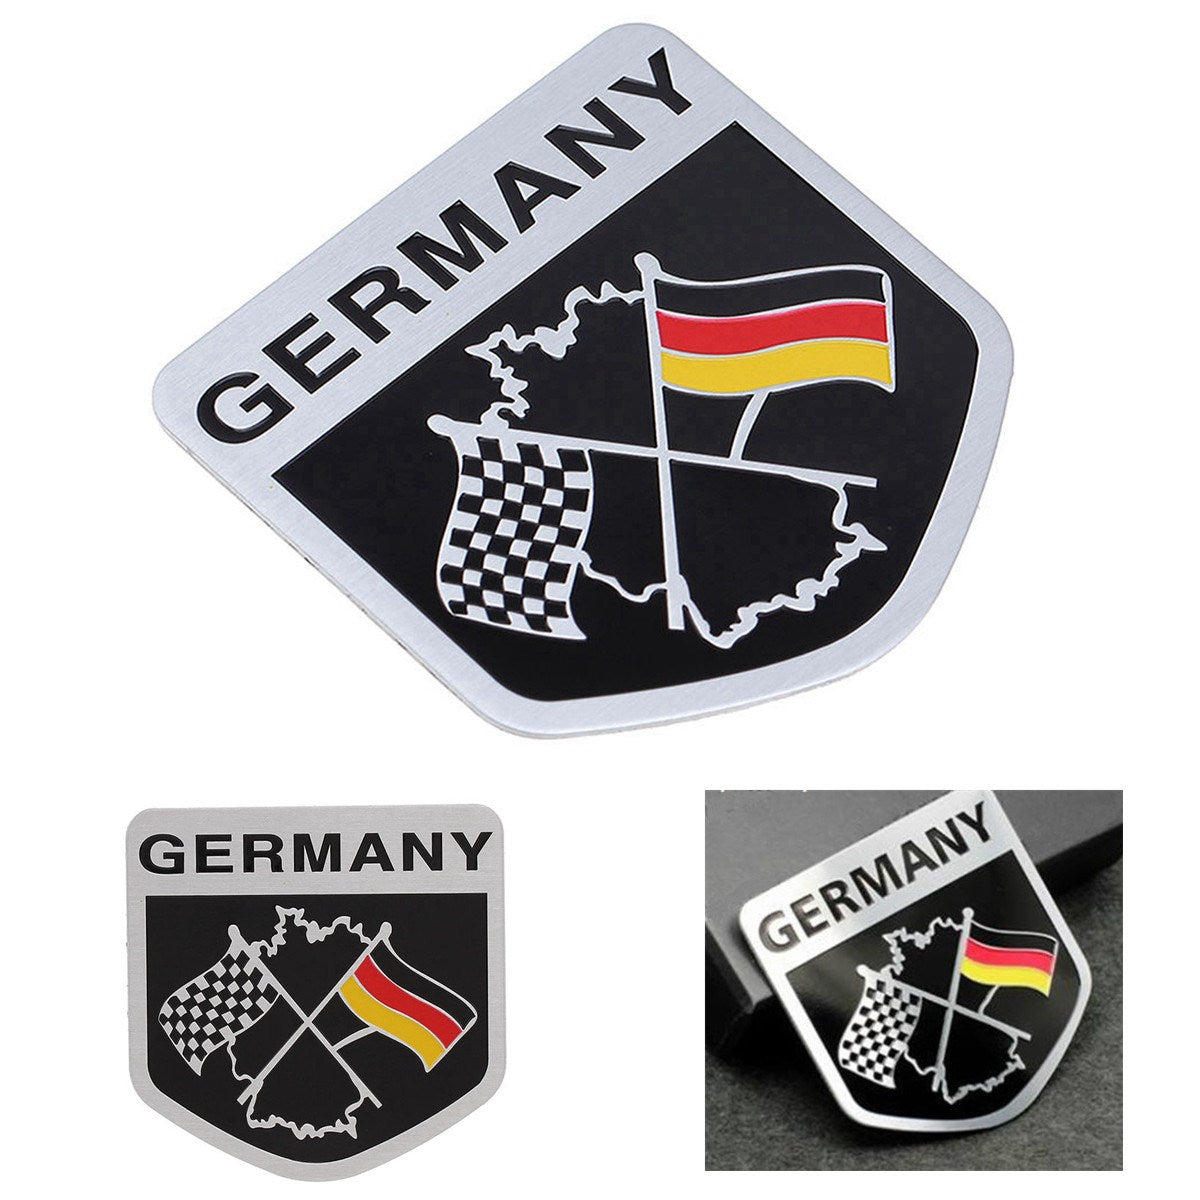 3D MetalGrill Emblem ( Germany )